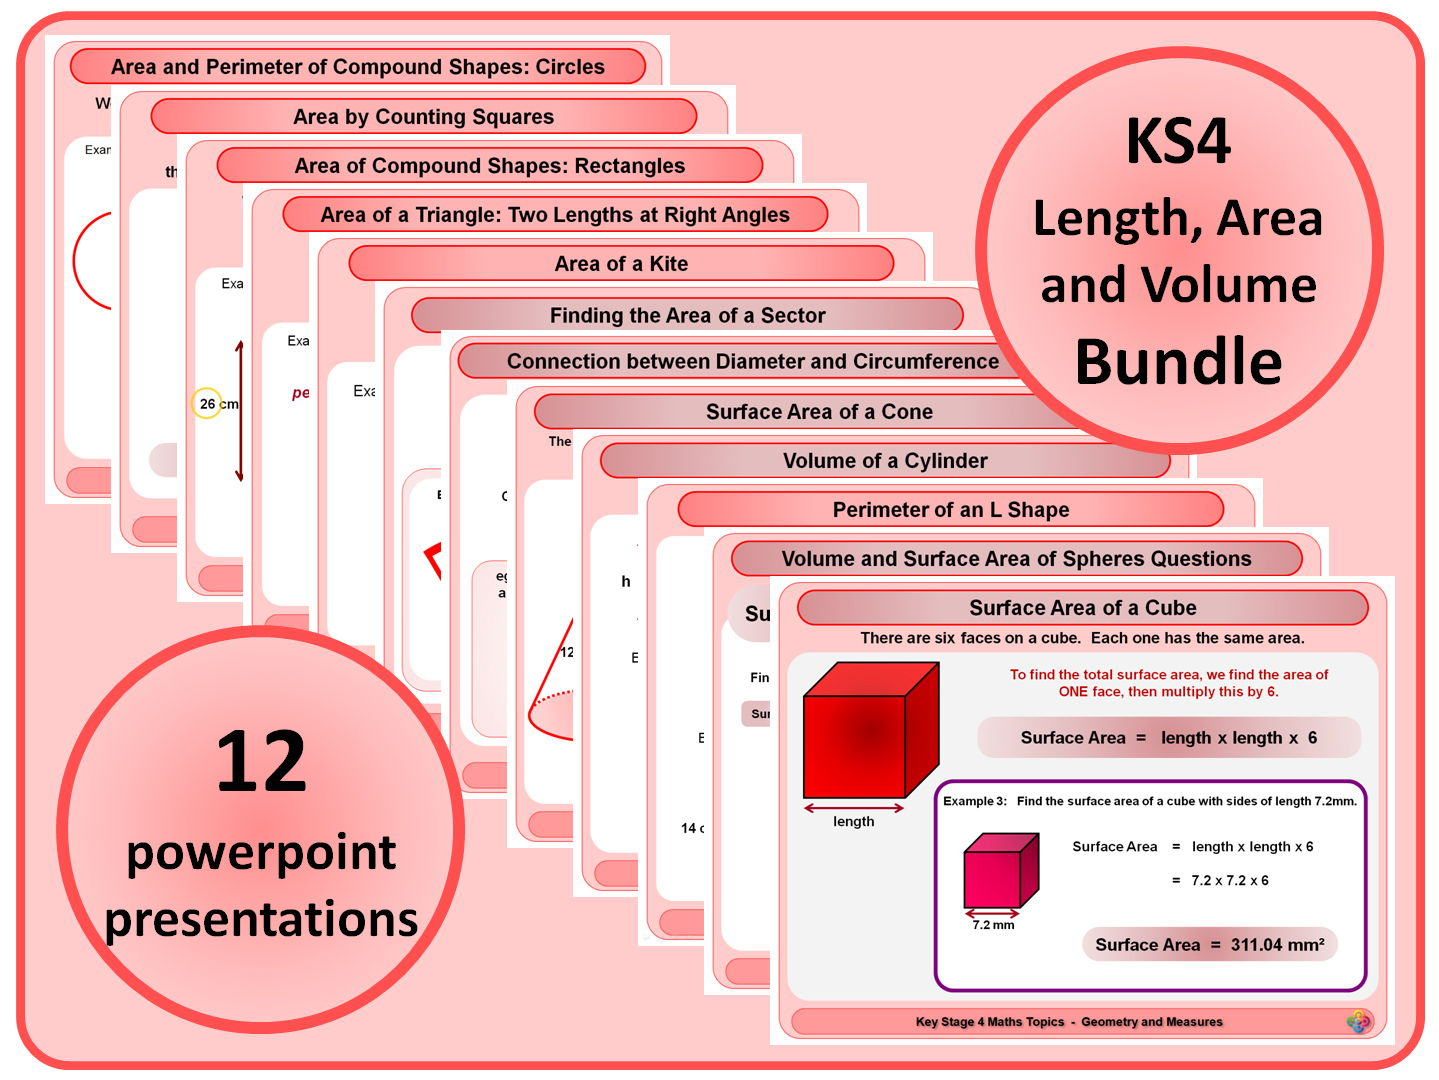 Ks4 Length Area And Volume Bundle